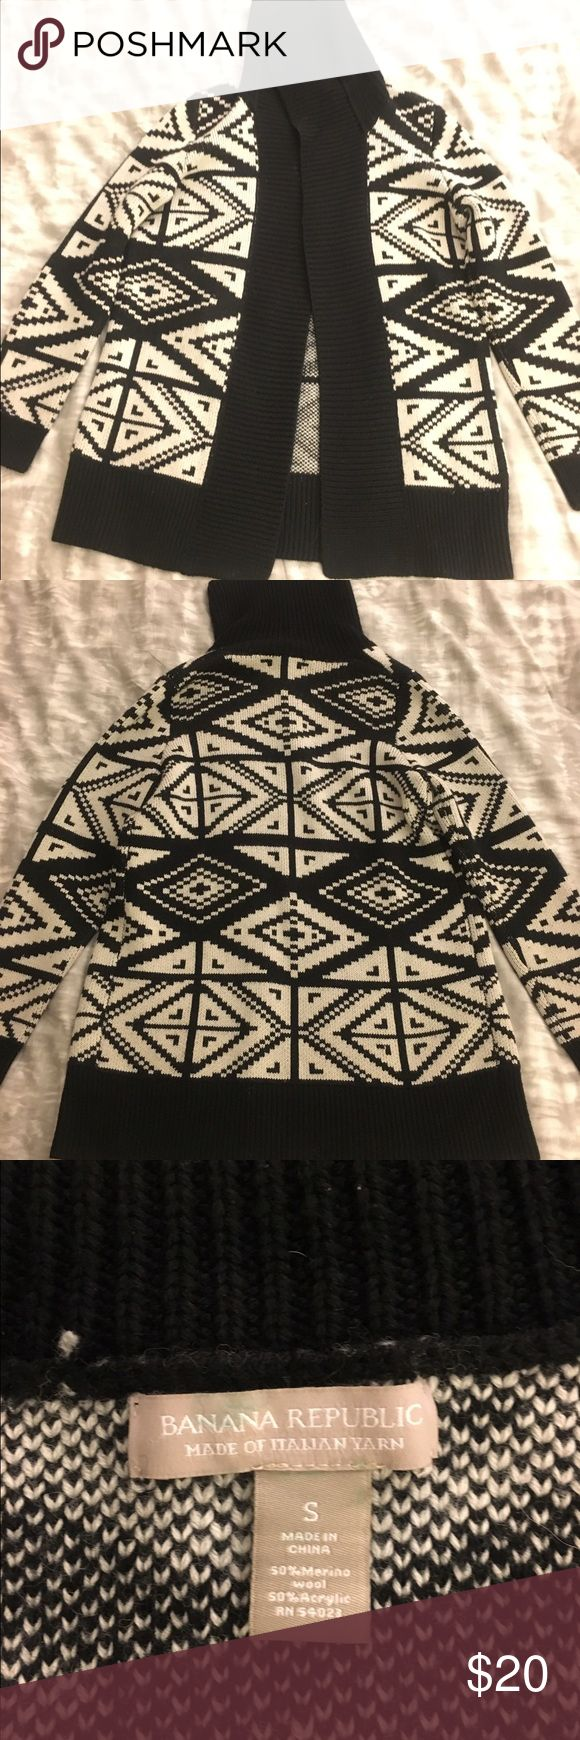 Banana Republic black and white ikat cardigan Soft, comfy cardigan! Great to throw over leggings, jeans, or a summer dress! Banana Republic Sweaters Cardigans